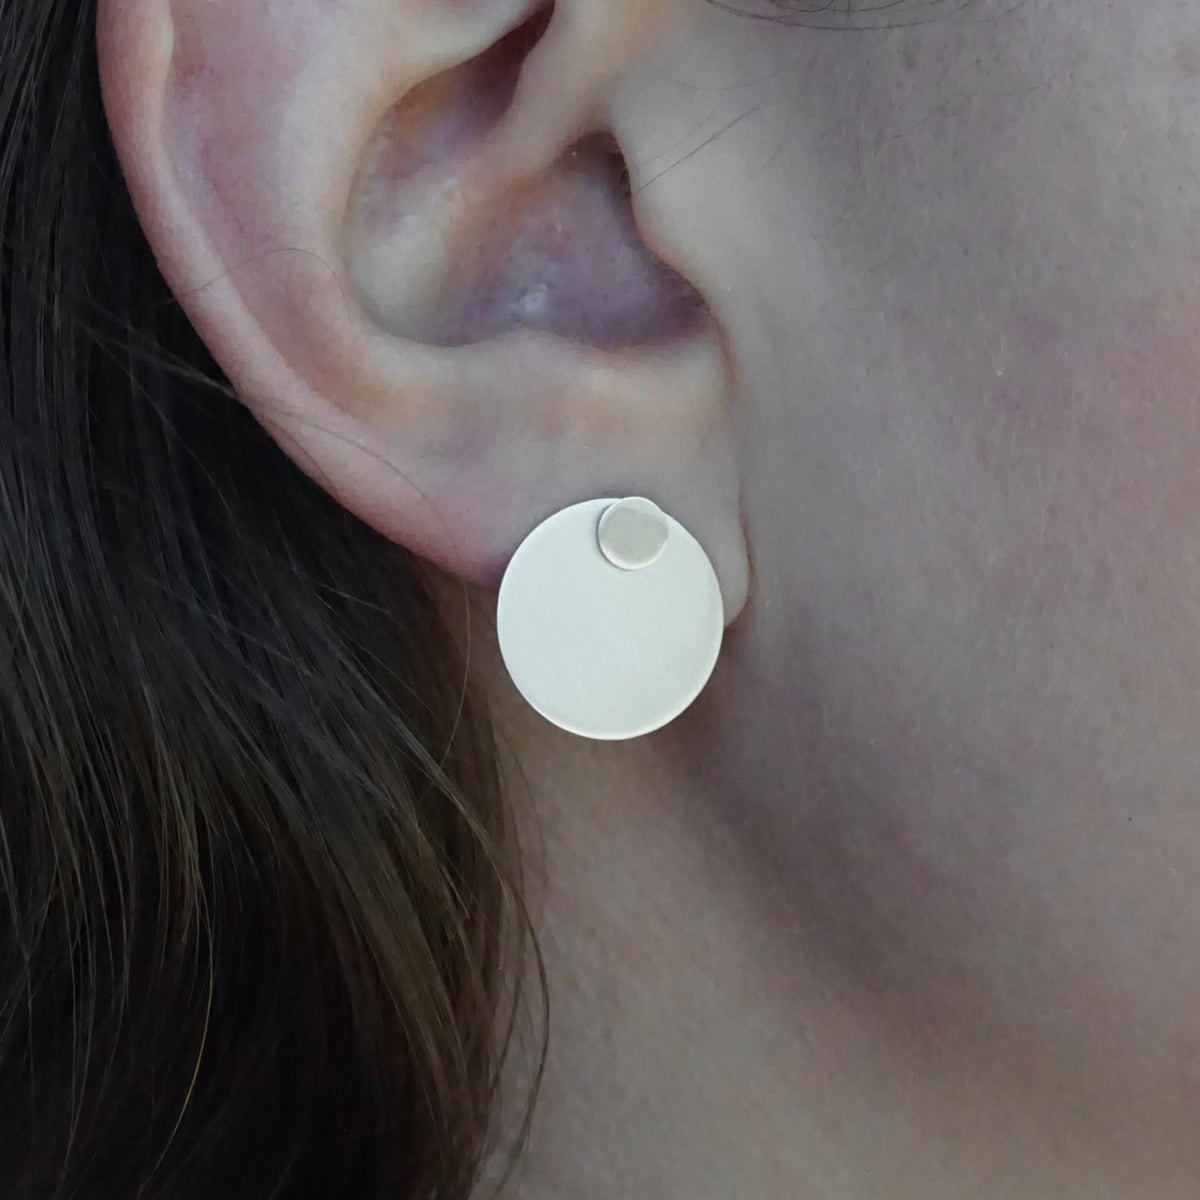 Chic Modern Hand-Made Circle Ear Jacket Stud Earrings - 0094 - Virginia Wynne Designs